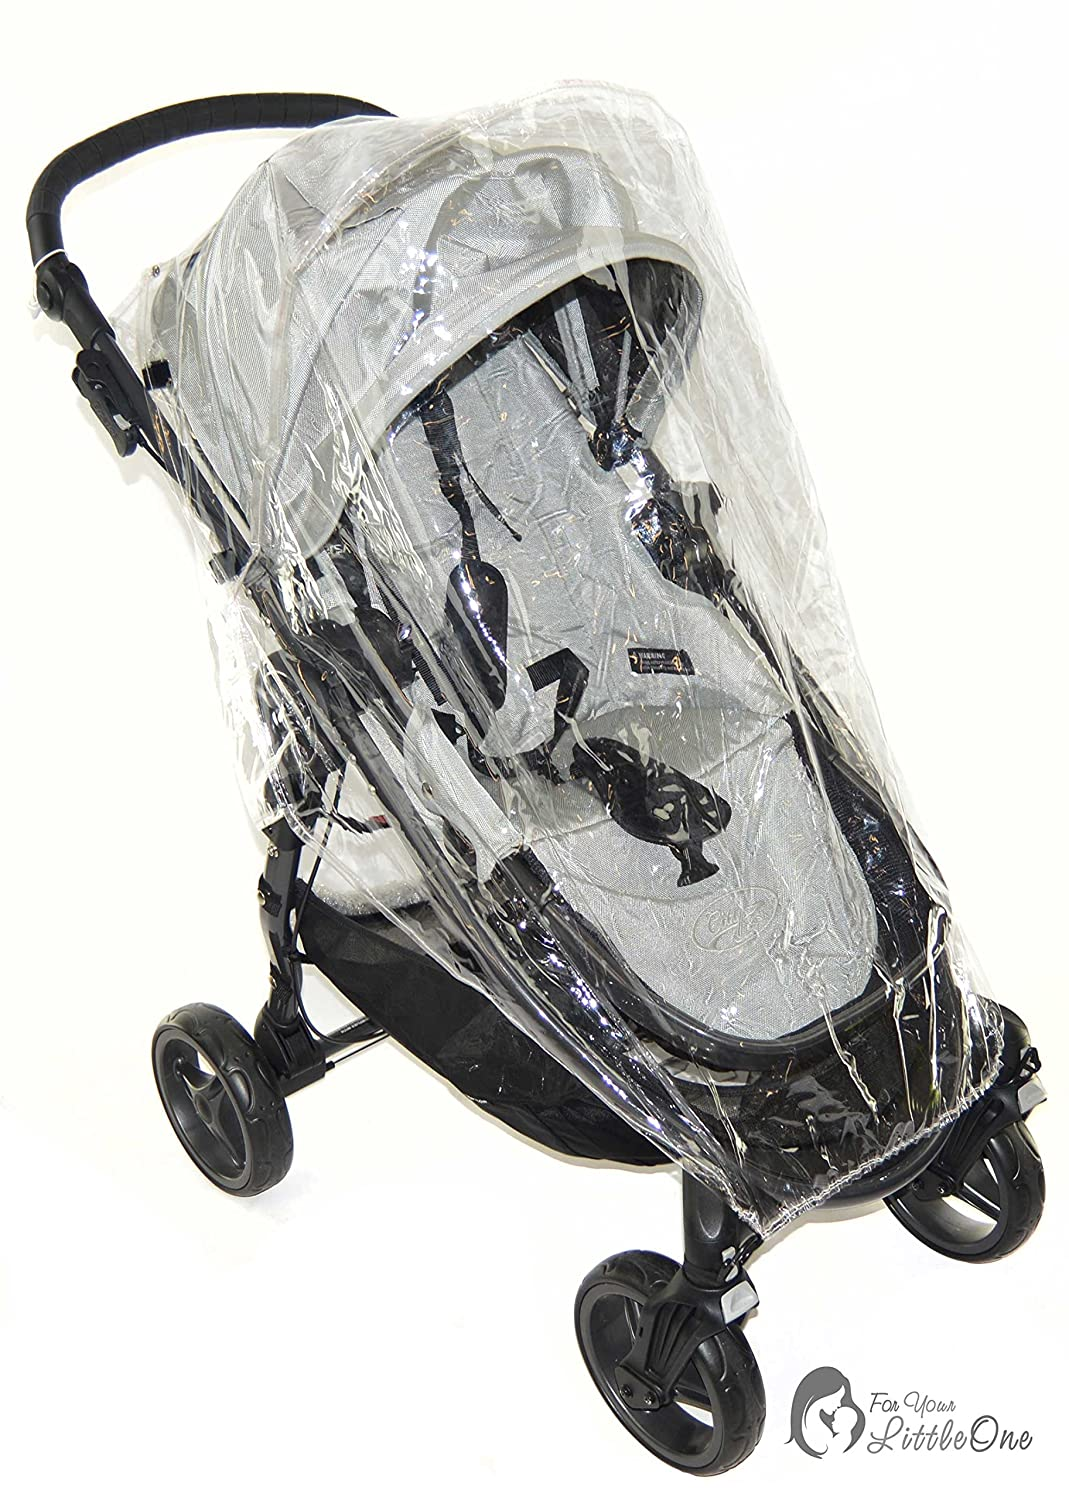 Parapioggia compatibile con Baby Jogger City mini passeggino